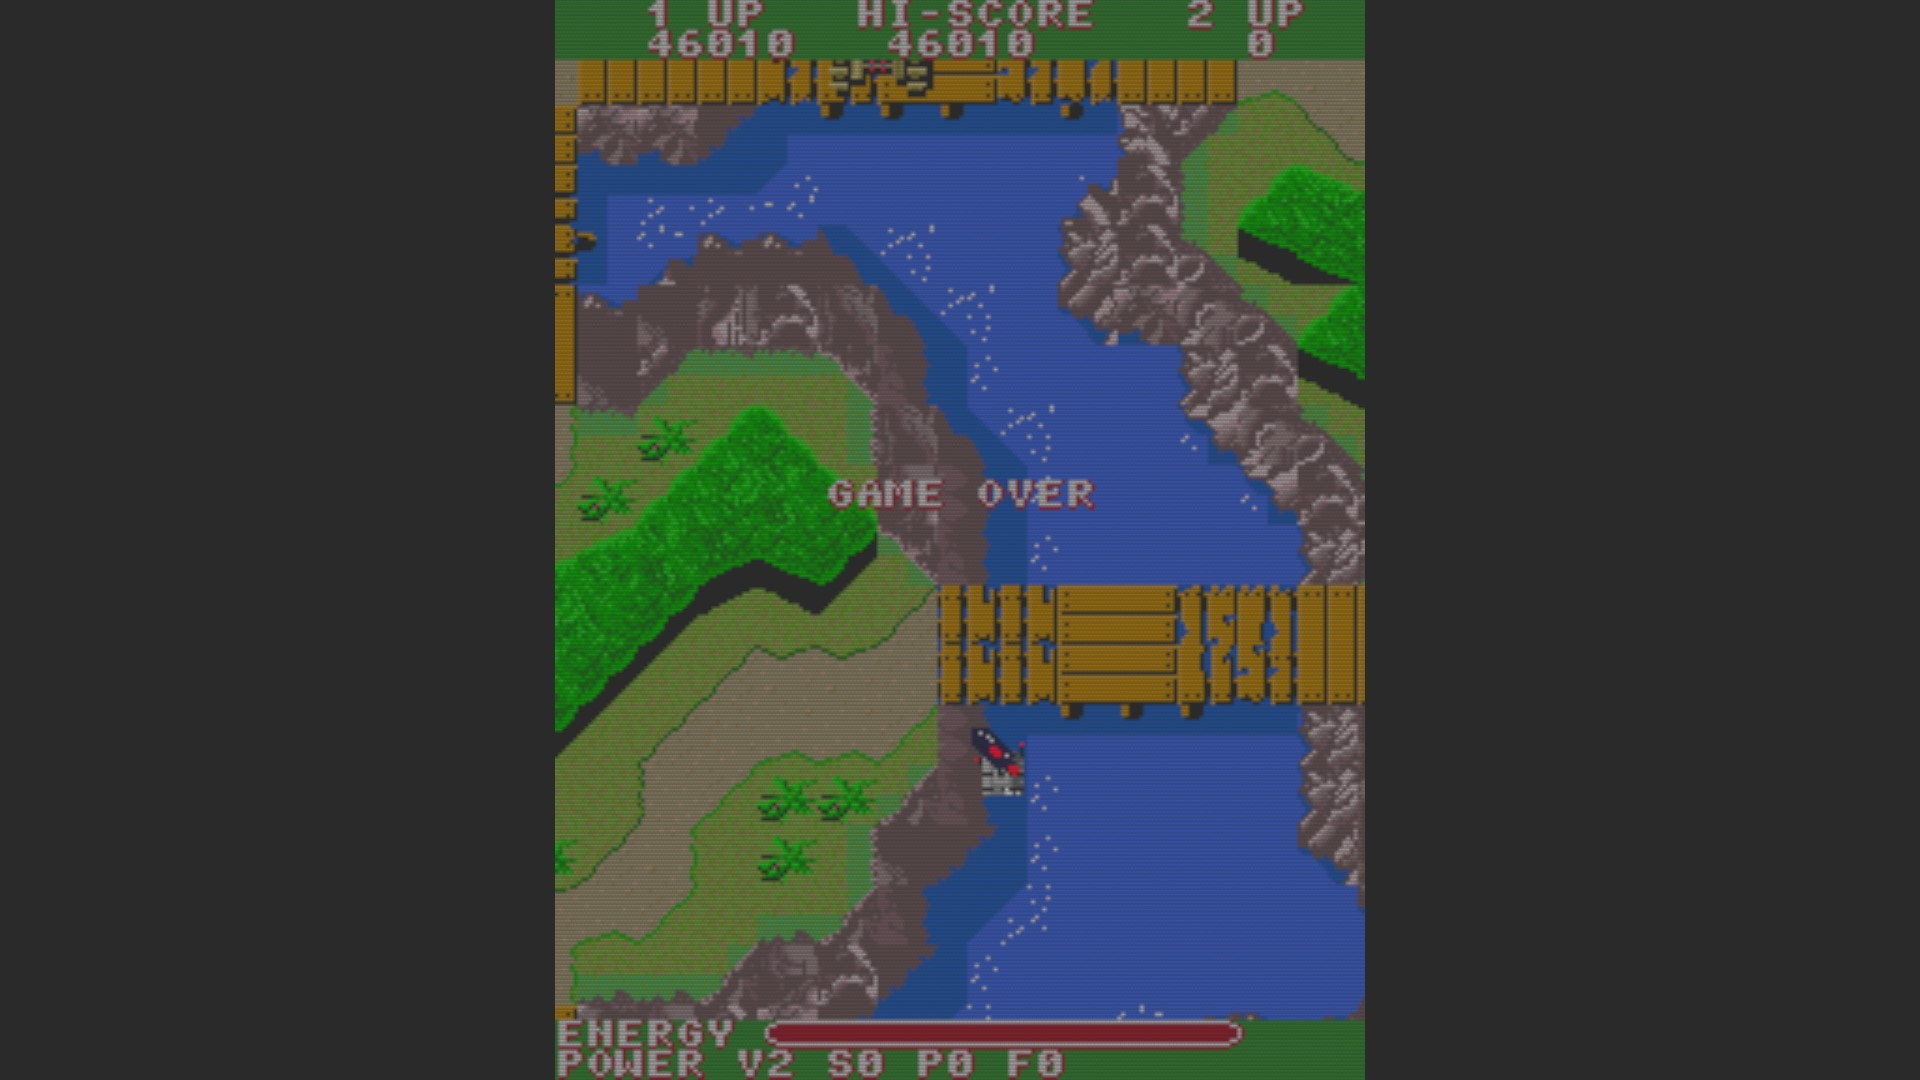 SNK 40th Anniversary Collection: TNK III [Arcade] 46,010 points